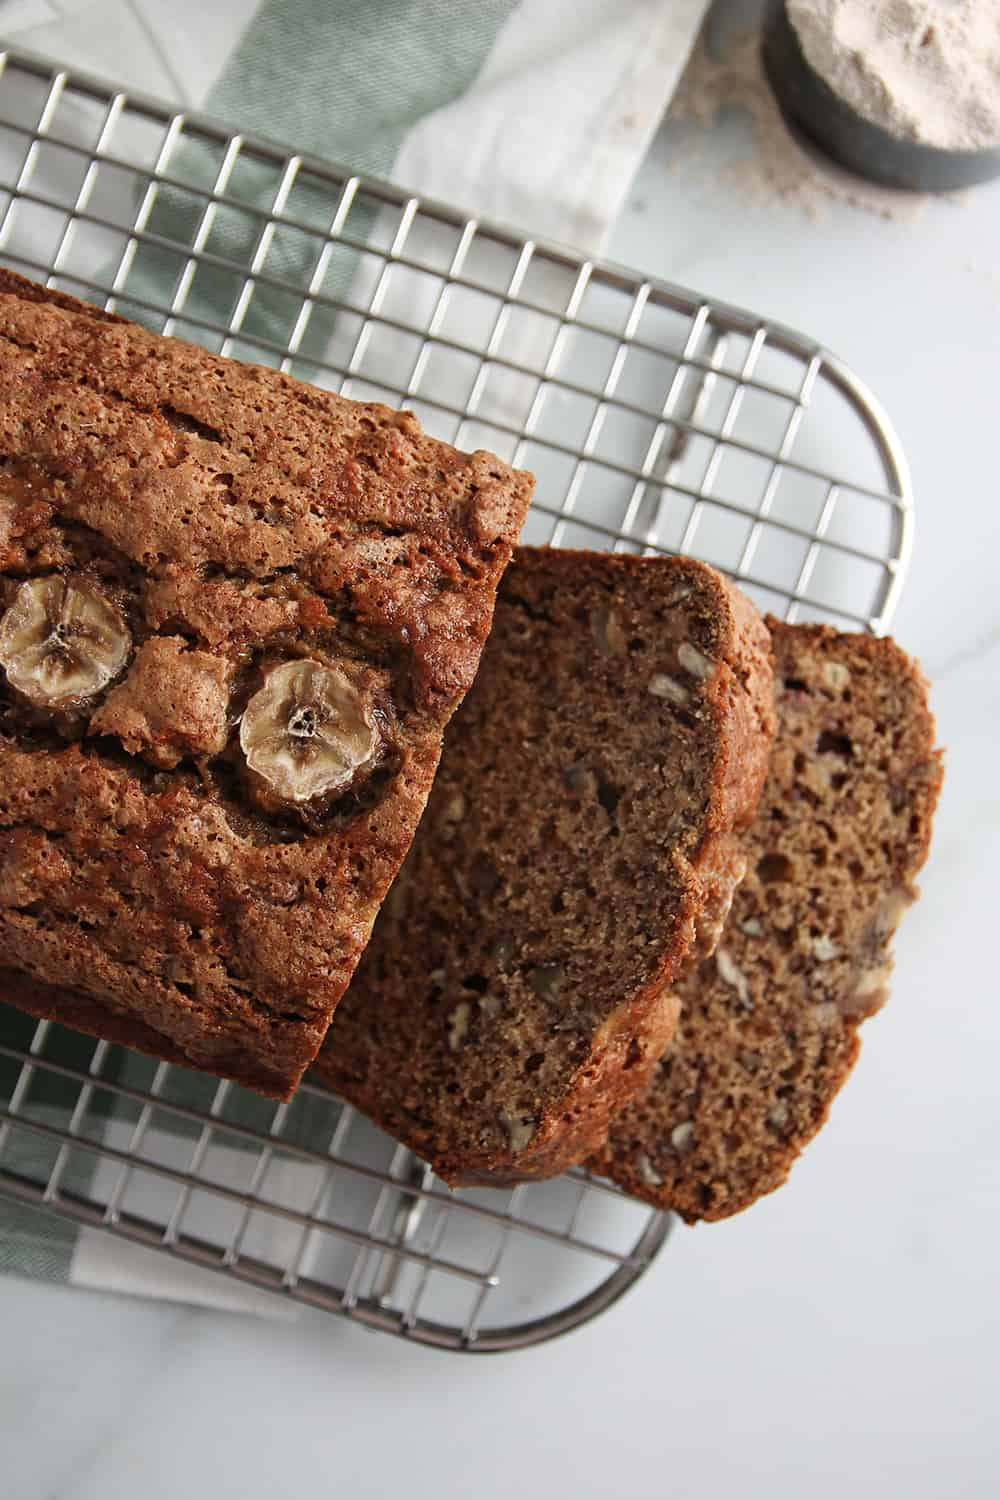 Overhead view of sliced loaf of vegan sourdough banana bread on a cooling rack, set on a marble countertop